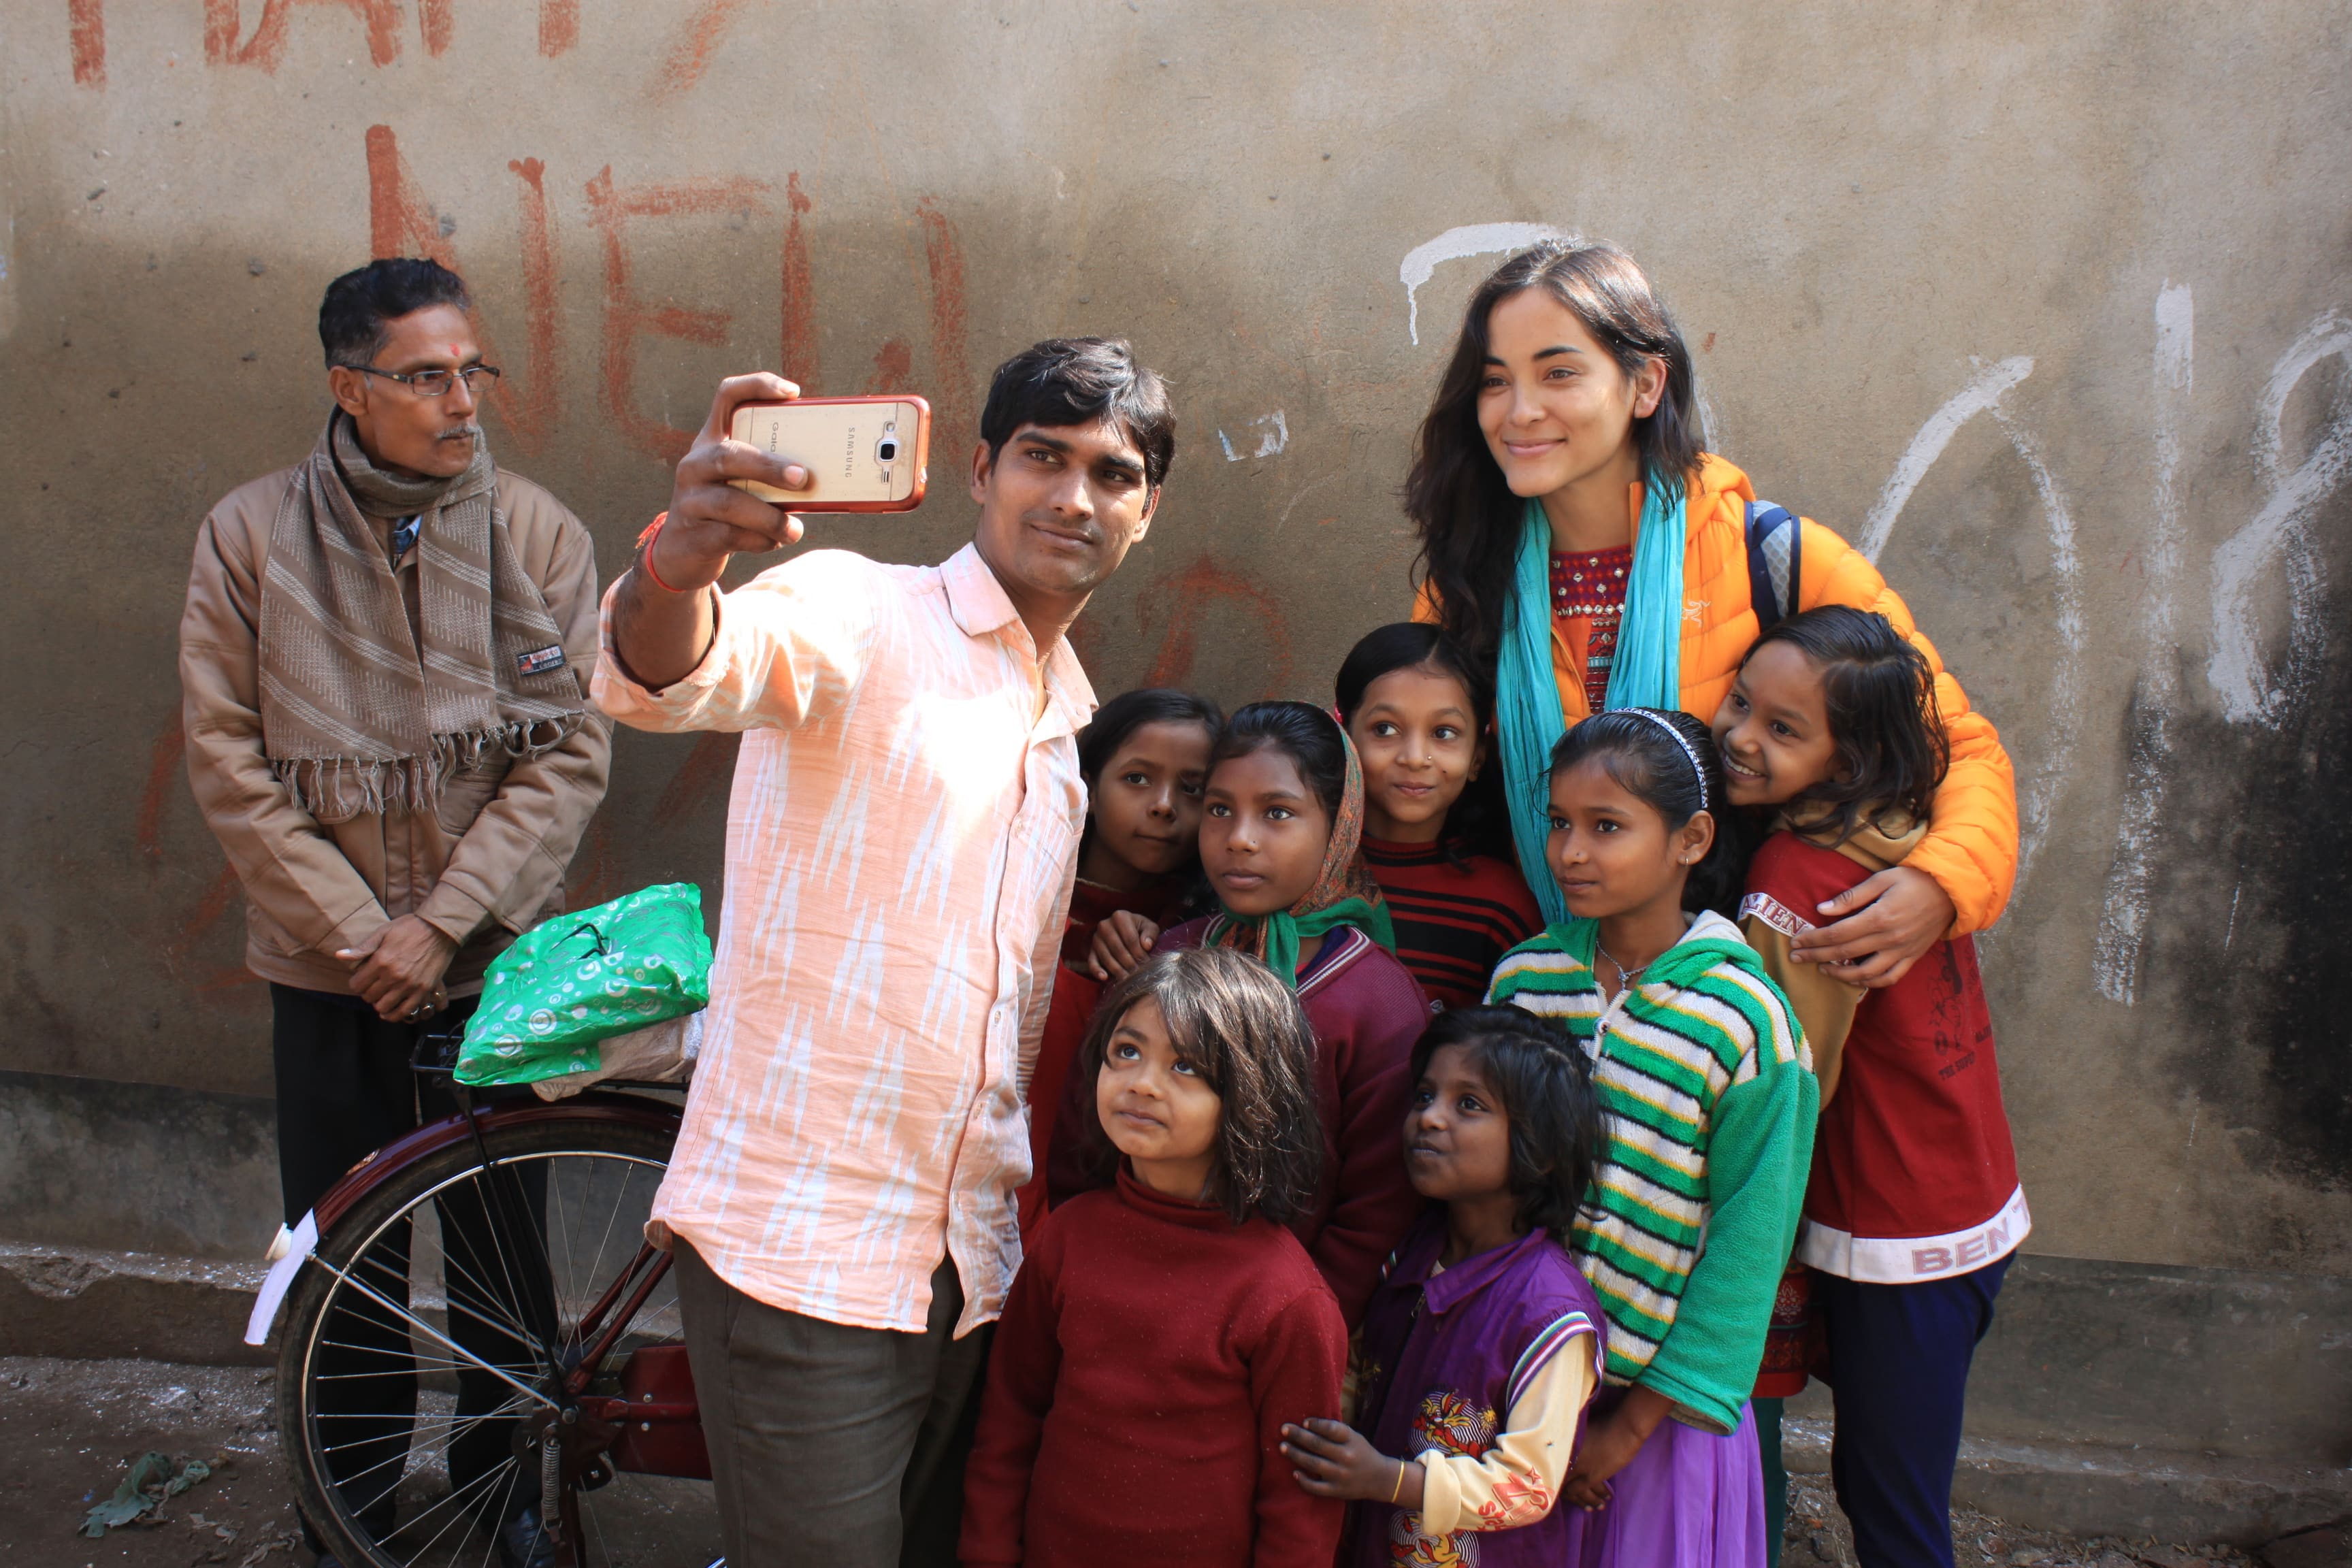 Reverse culture shock from long-term travel - Taking selfies with young girls in Bihar, India - Lost With Purpose travel blog